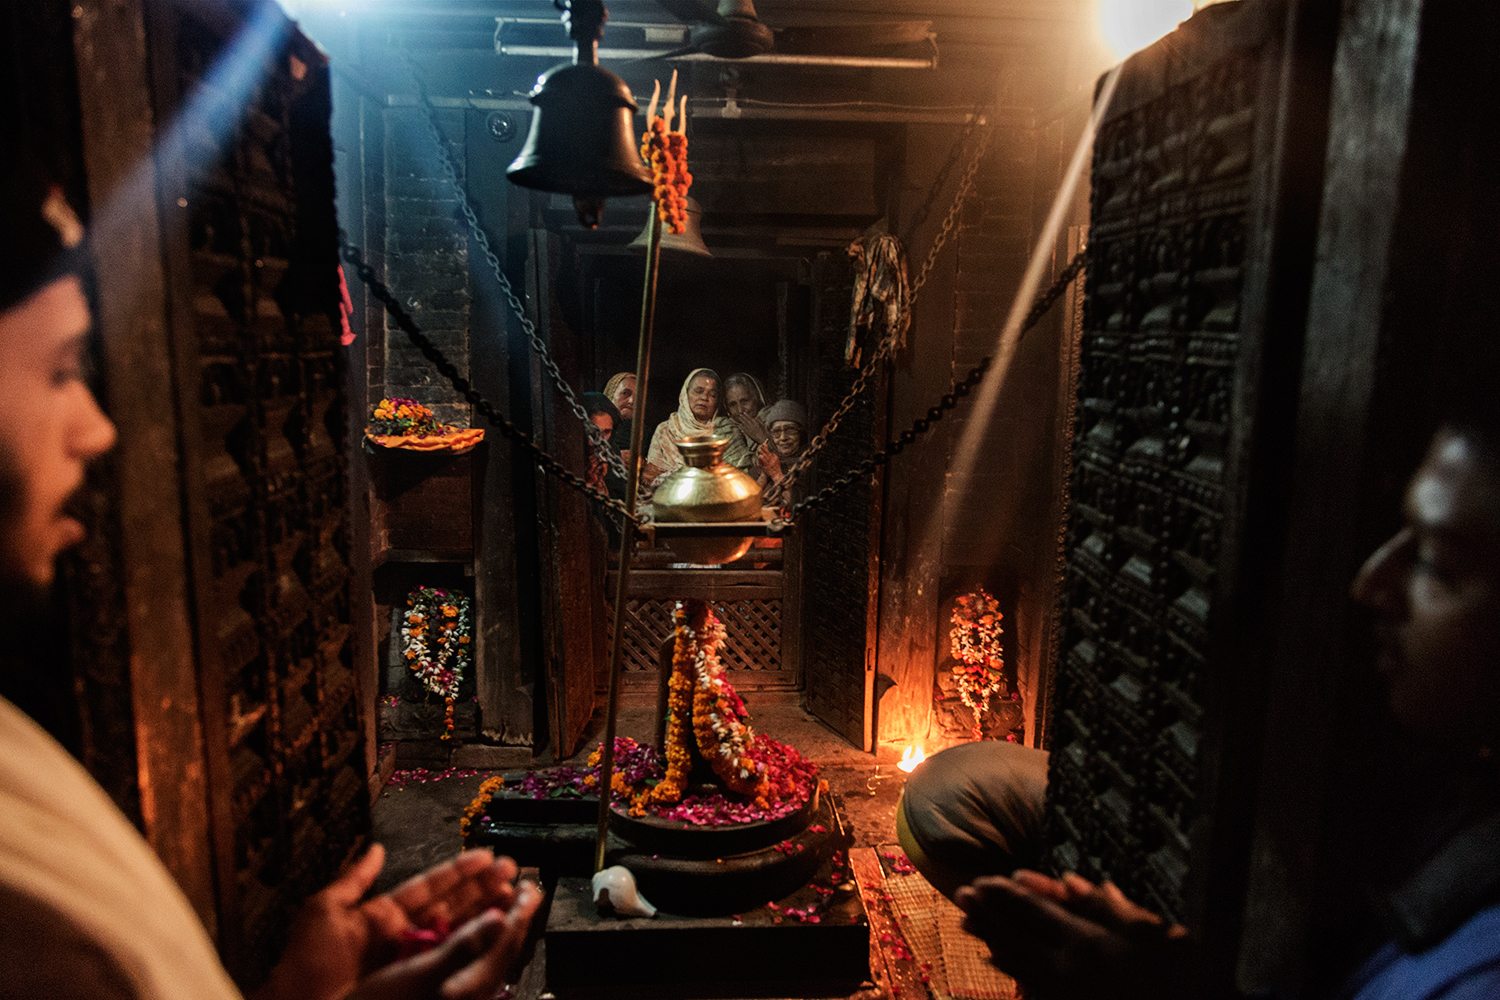 In the past in India, the loss of a husband stigmatised a bereaved wife. Widowed women were not welcome to participate in religious ceremonies, considered a bad omen; they were treated as untouchables and often cast away from their communities. This adopted belief common to Hindus in India is also predominant in Nepal and Bangladesh, with many widows from the neighbouring countries travelling far from their homelands closer to the Hindu holy cities such as Varanasi, also known as Benares, Kashi, the City of Light.